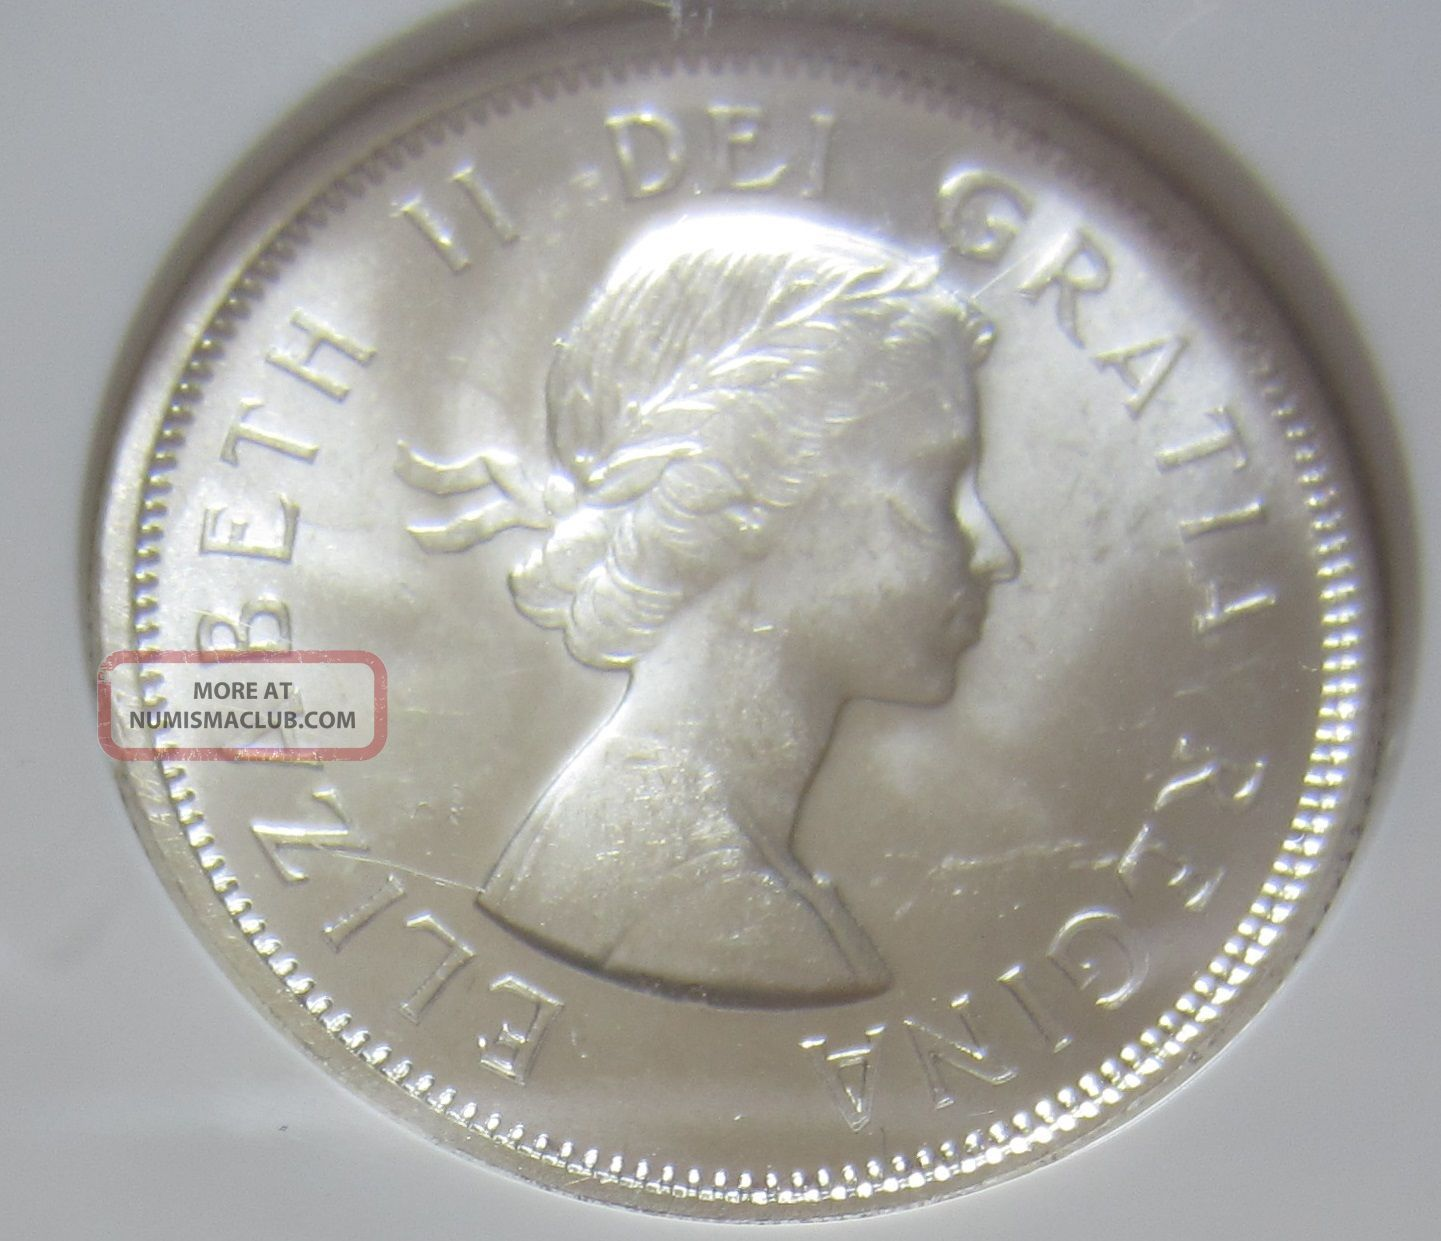 1957 Canada Silver Twenty - Five Cents Coin.  Quarter.  Ngc Ms - 64 Unc 035 Coins: Canada photo